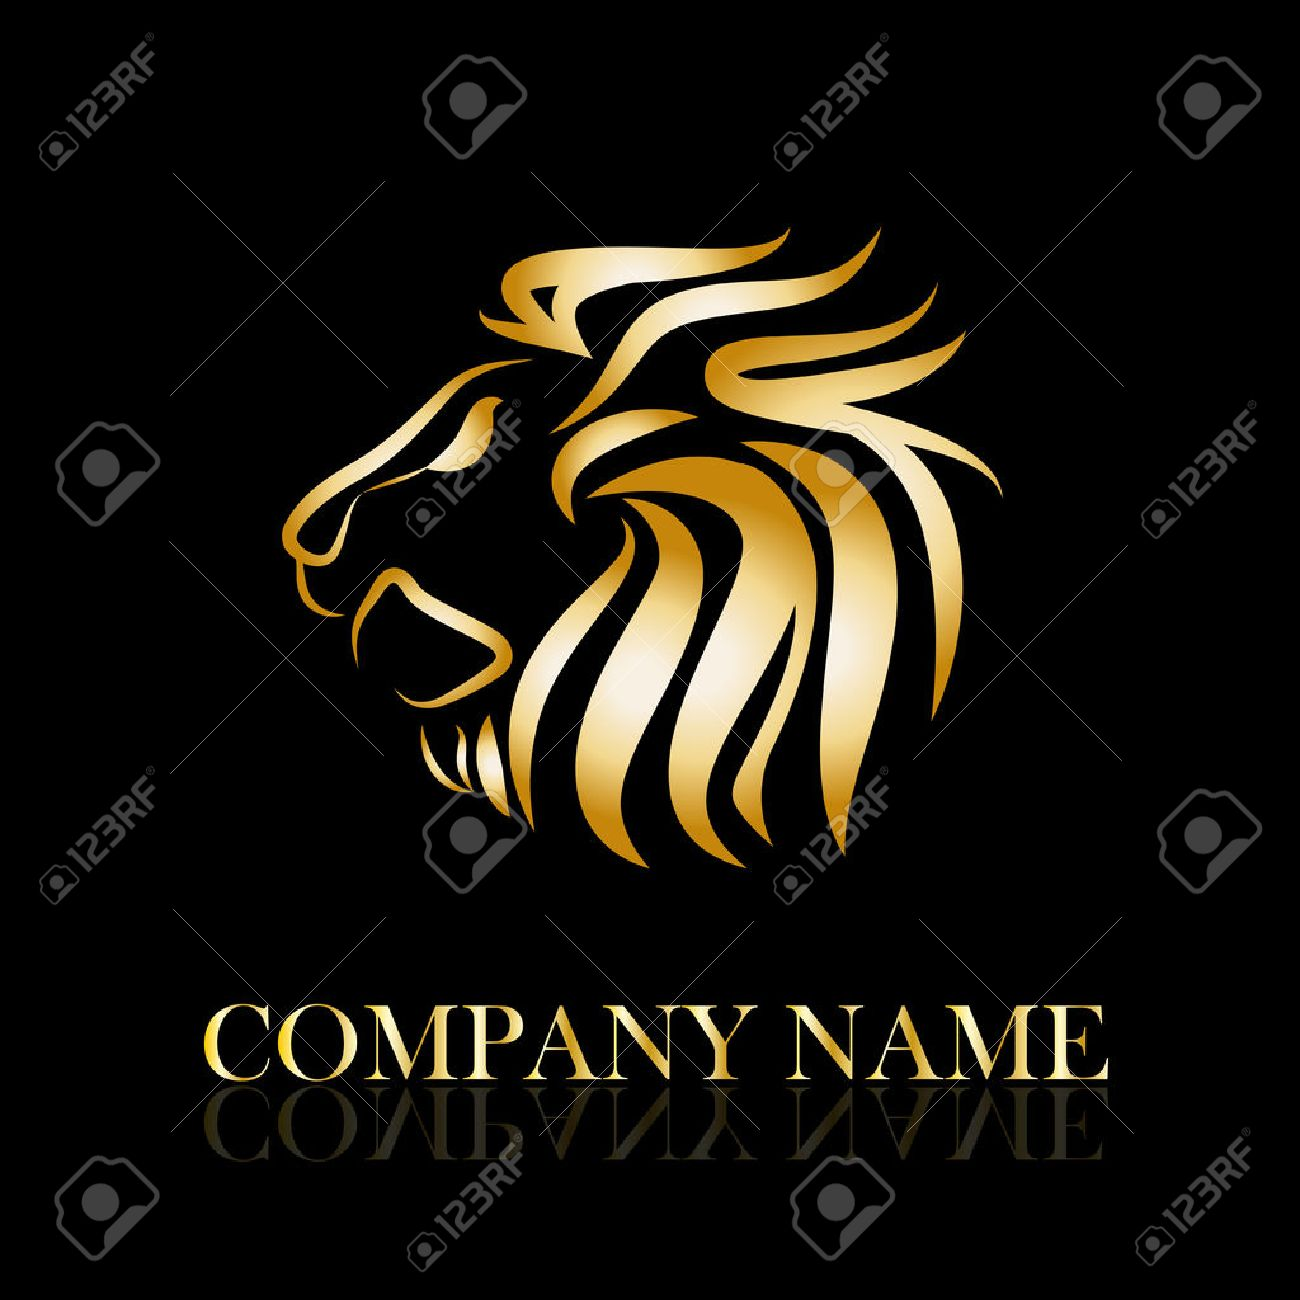 Vector Sign Golden Lion Royalty Free Cliparts, Vectors, And Stock ...